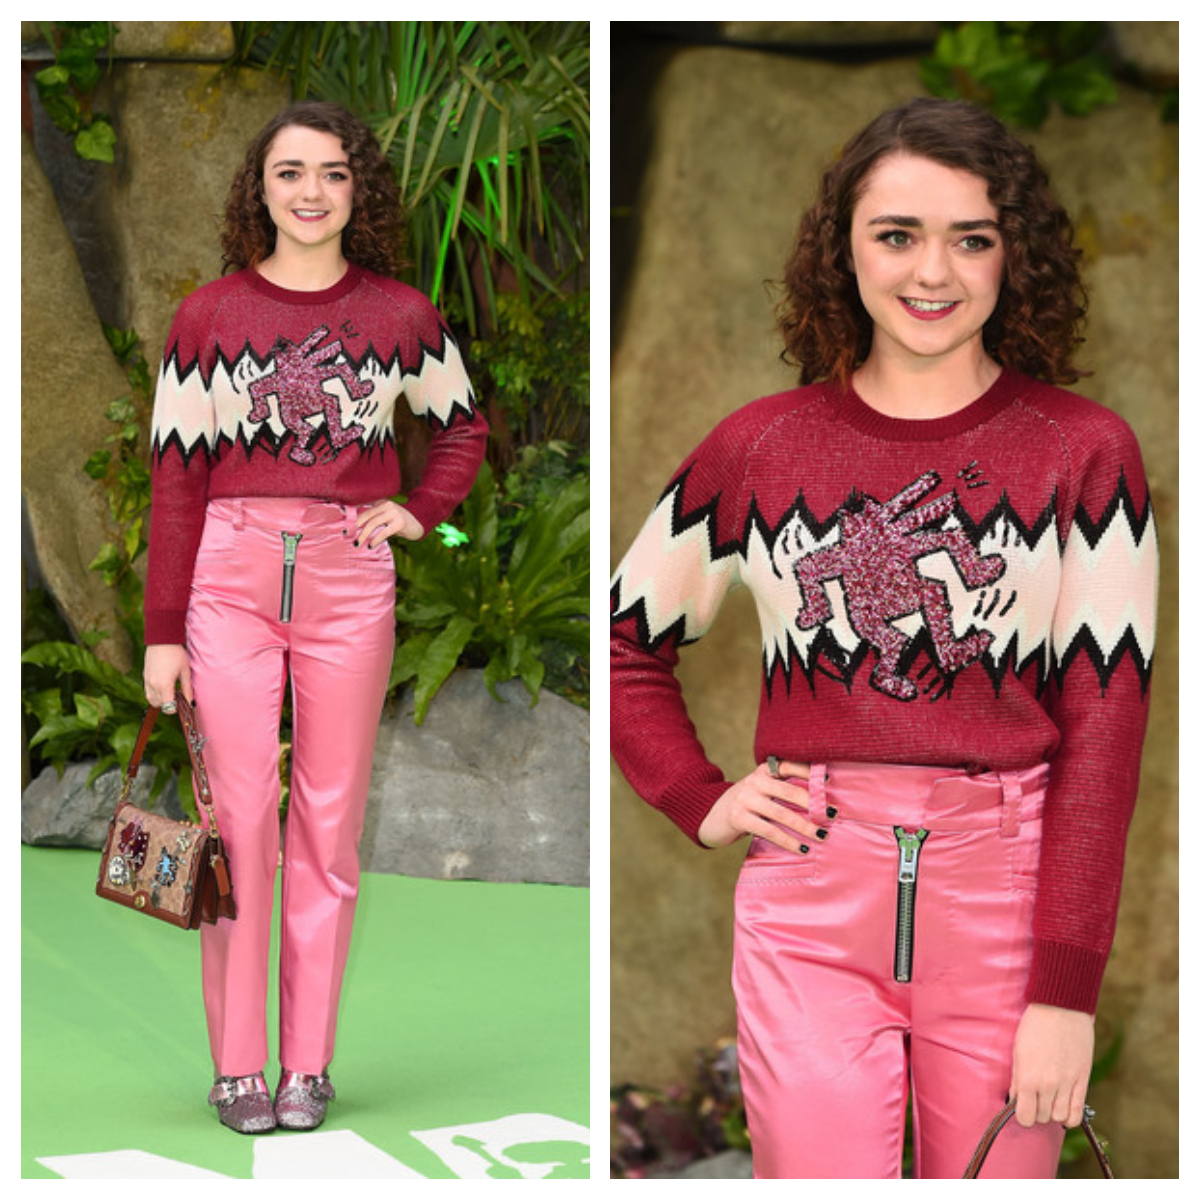 Top 12 des pires looks de Maisie Williams (Game Of Thrones)